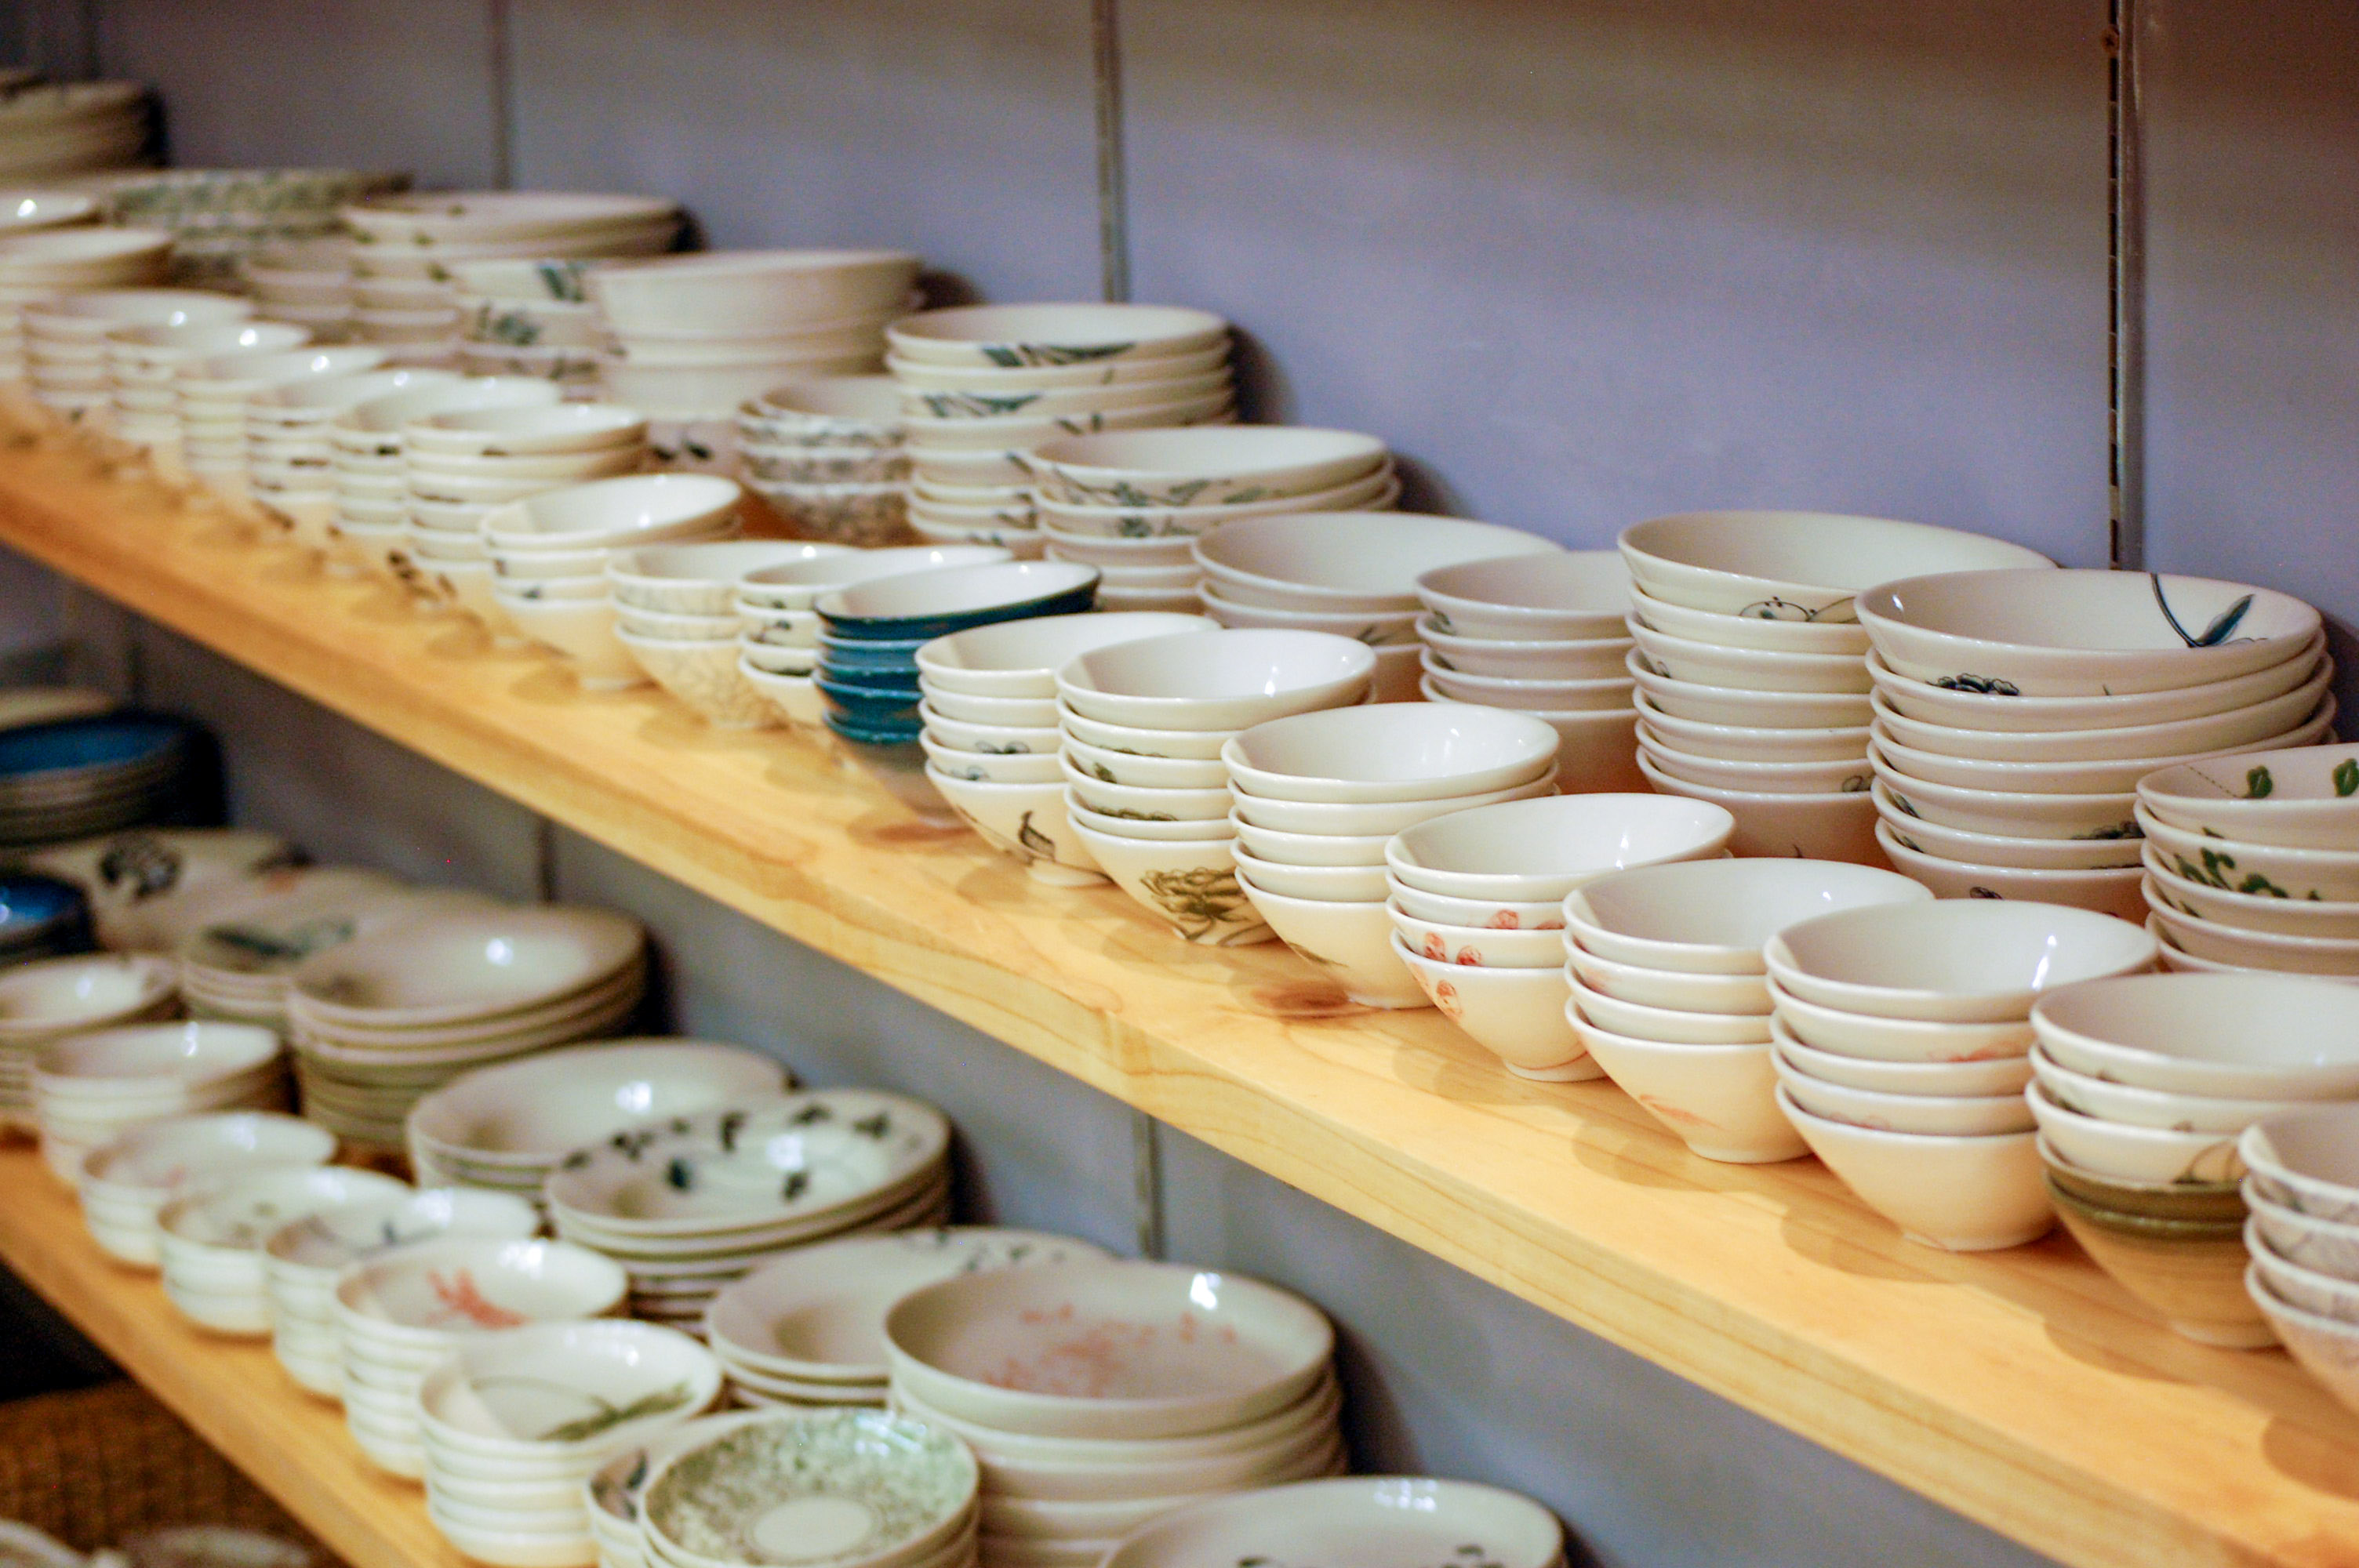 6 Great Souvenirs to Buy in Saigon - The Christina's Blog